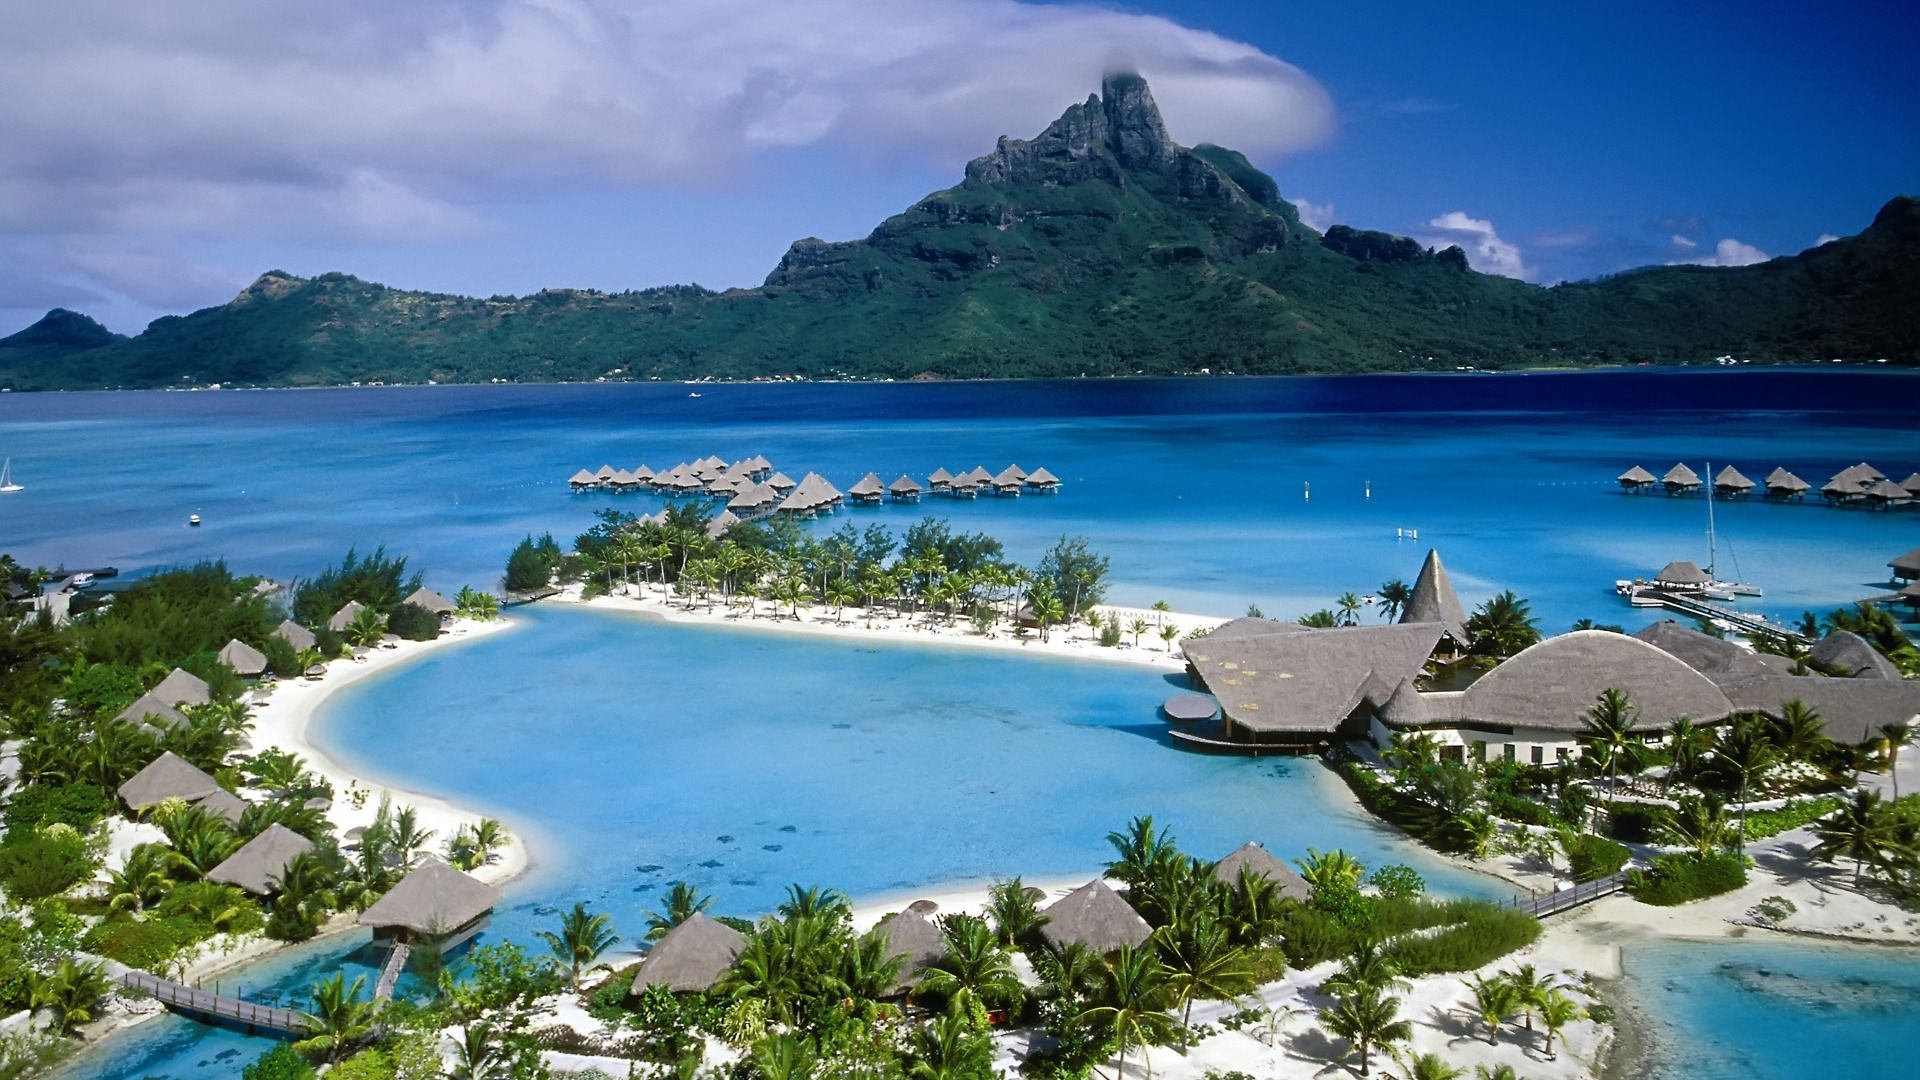 Hd wallpaper beach - French Polynesiap High Definition Beach Wallpapers